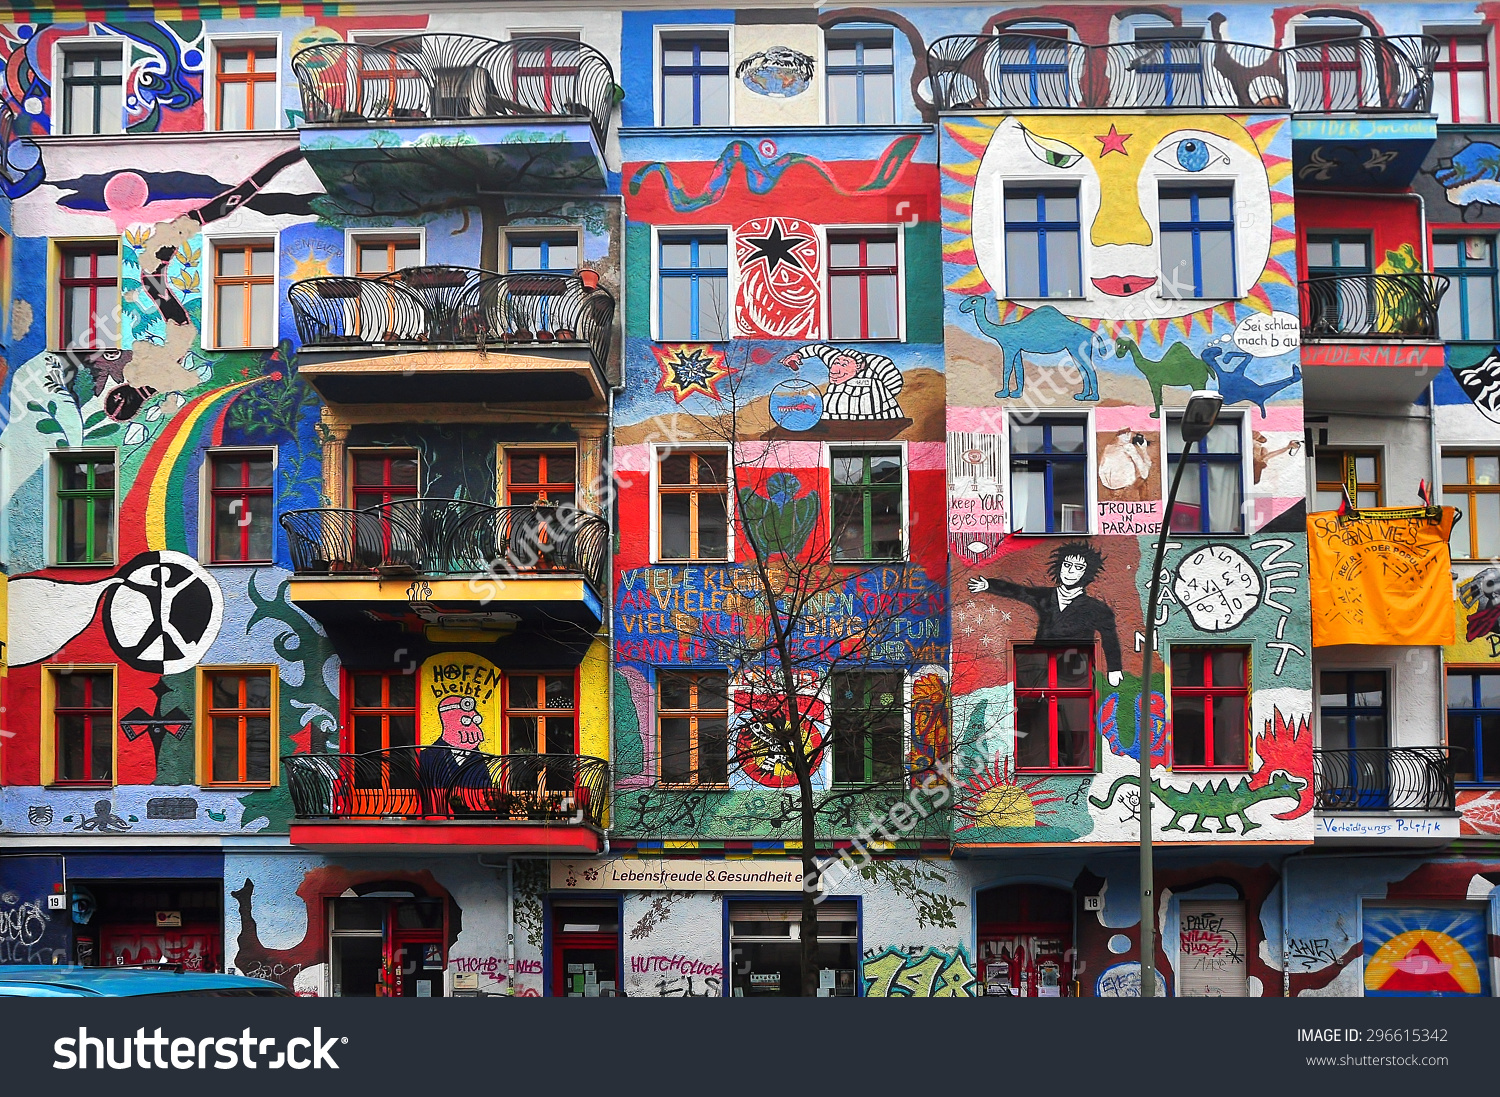 Berlin March 6 Graffiti House Easten Stock Photo 296615342.